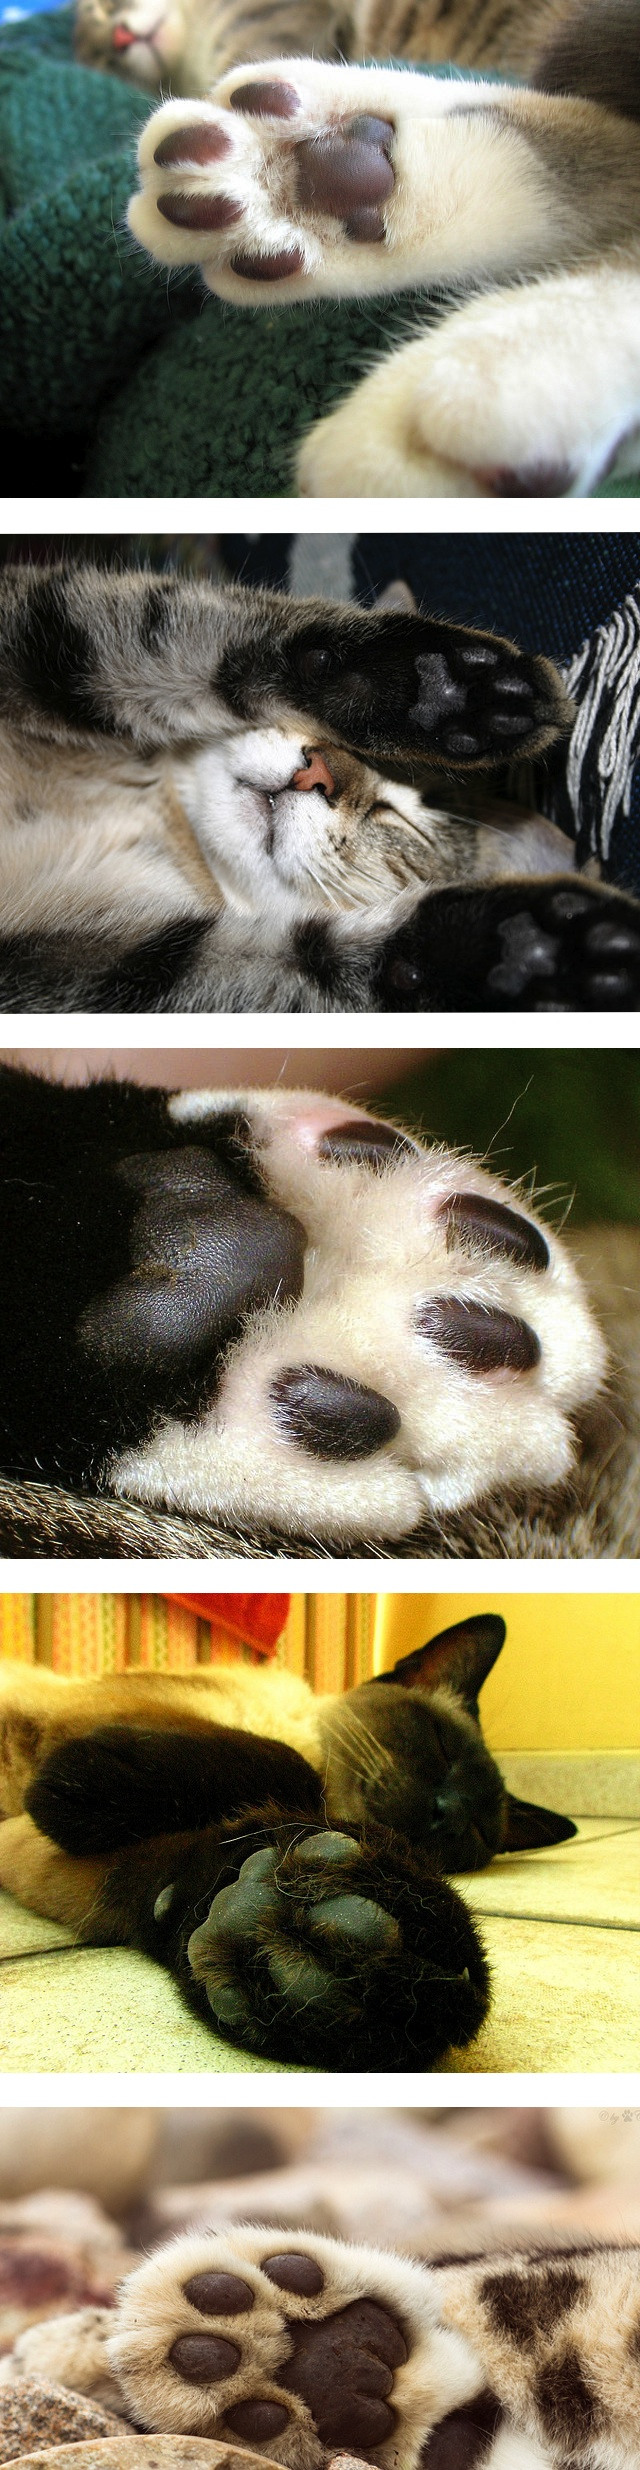 Kitty Paws Are The Most Perfect Precious Adorable Thing I Just Love Them Cat Paws Crazy Cats Cats